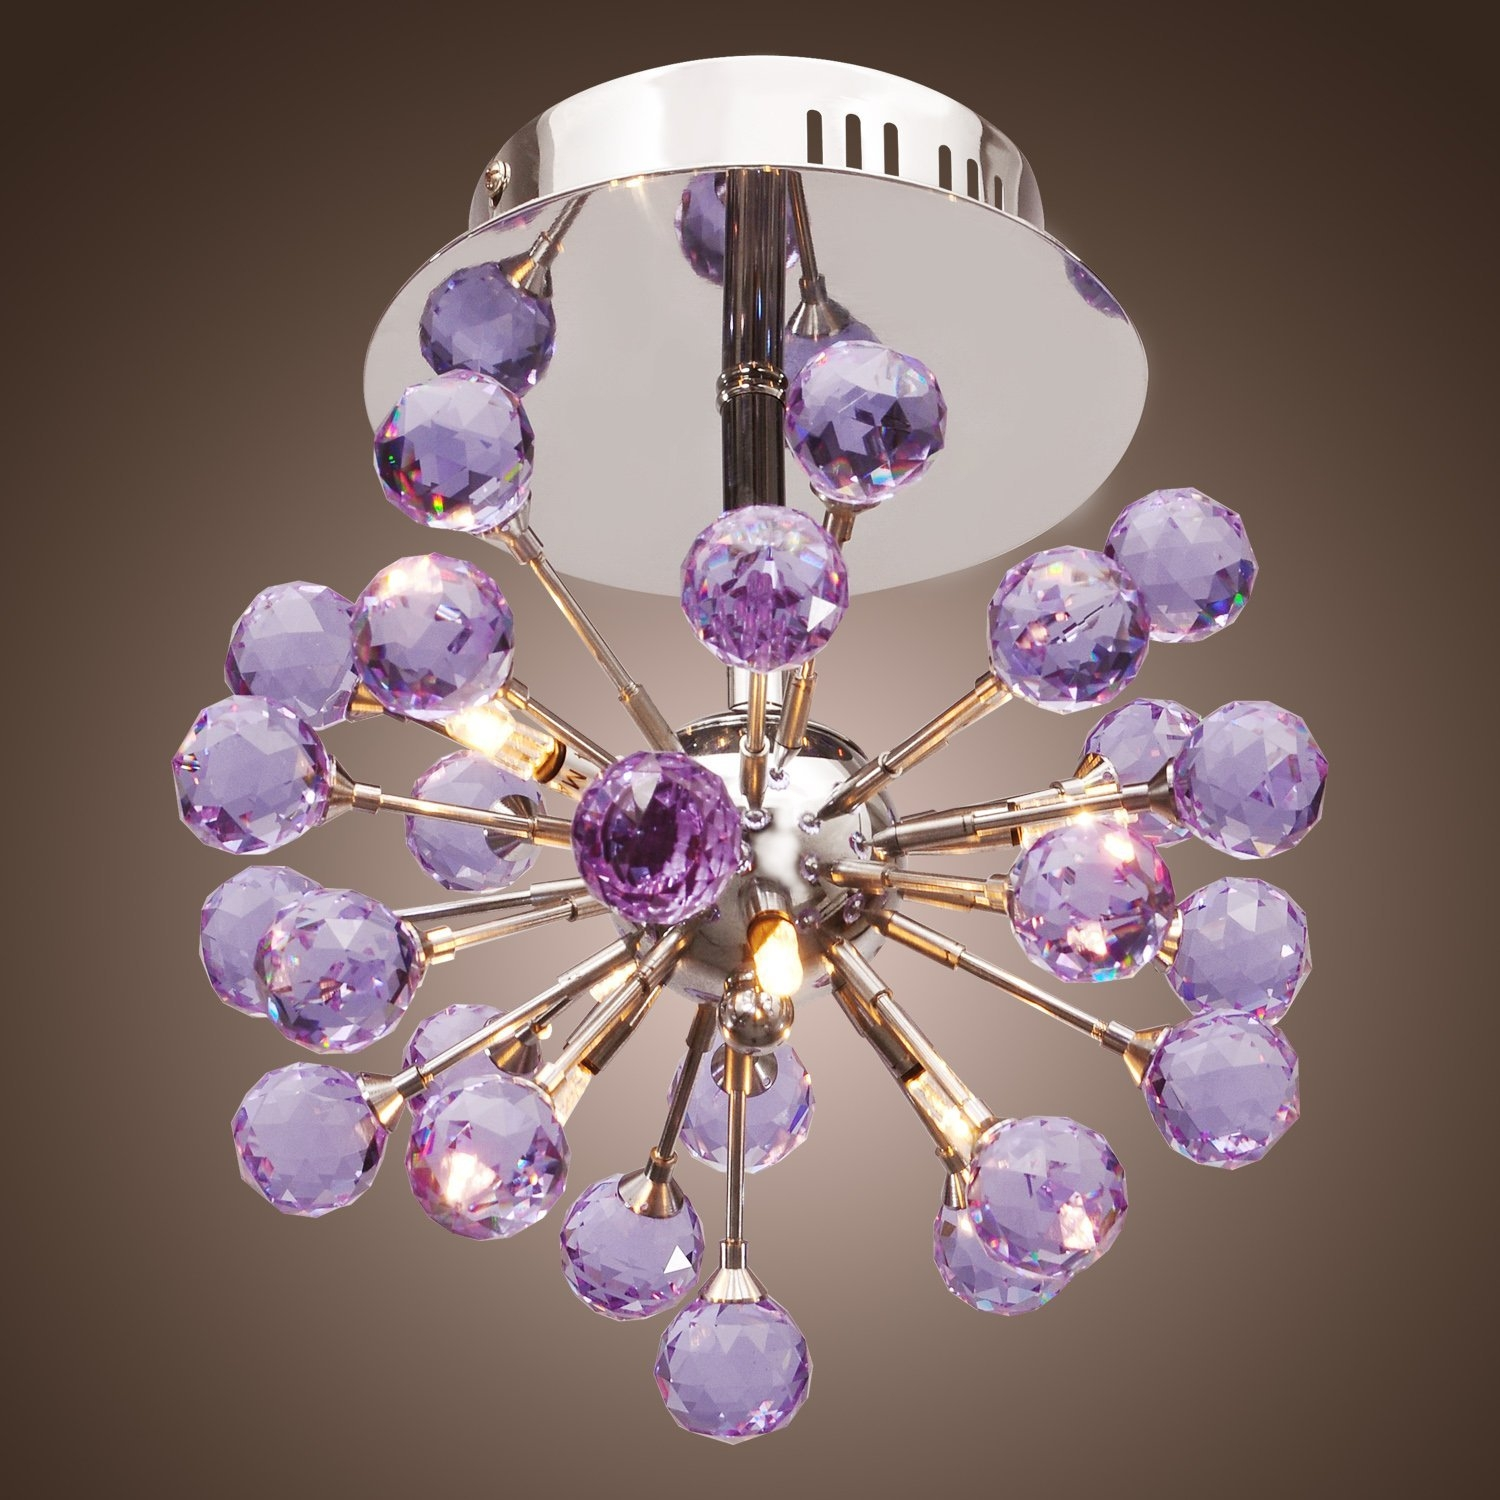 Lightinthebox 6 Light Floral Shape K9 Crystal Ceiling Light Purple In Purple Crystal Chandelier Lights (Image 15 of 25)